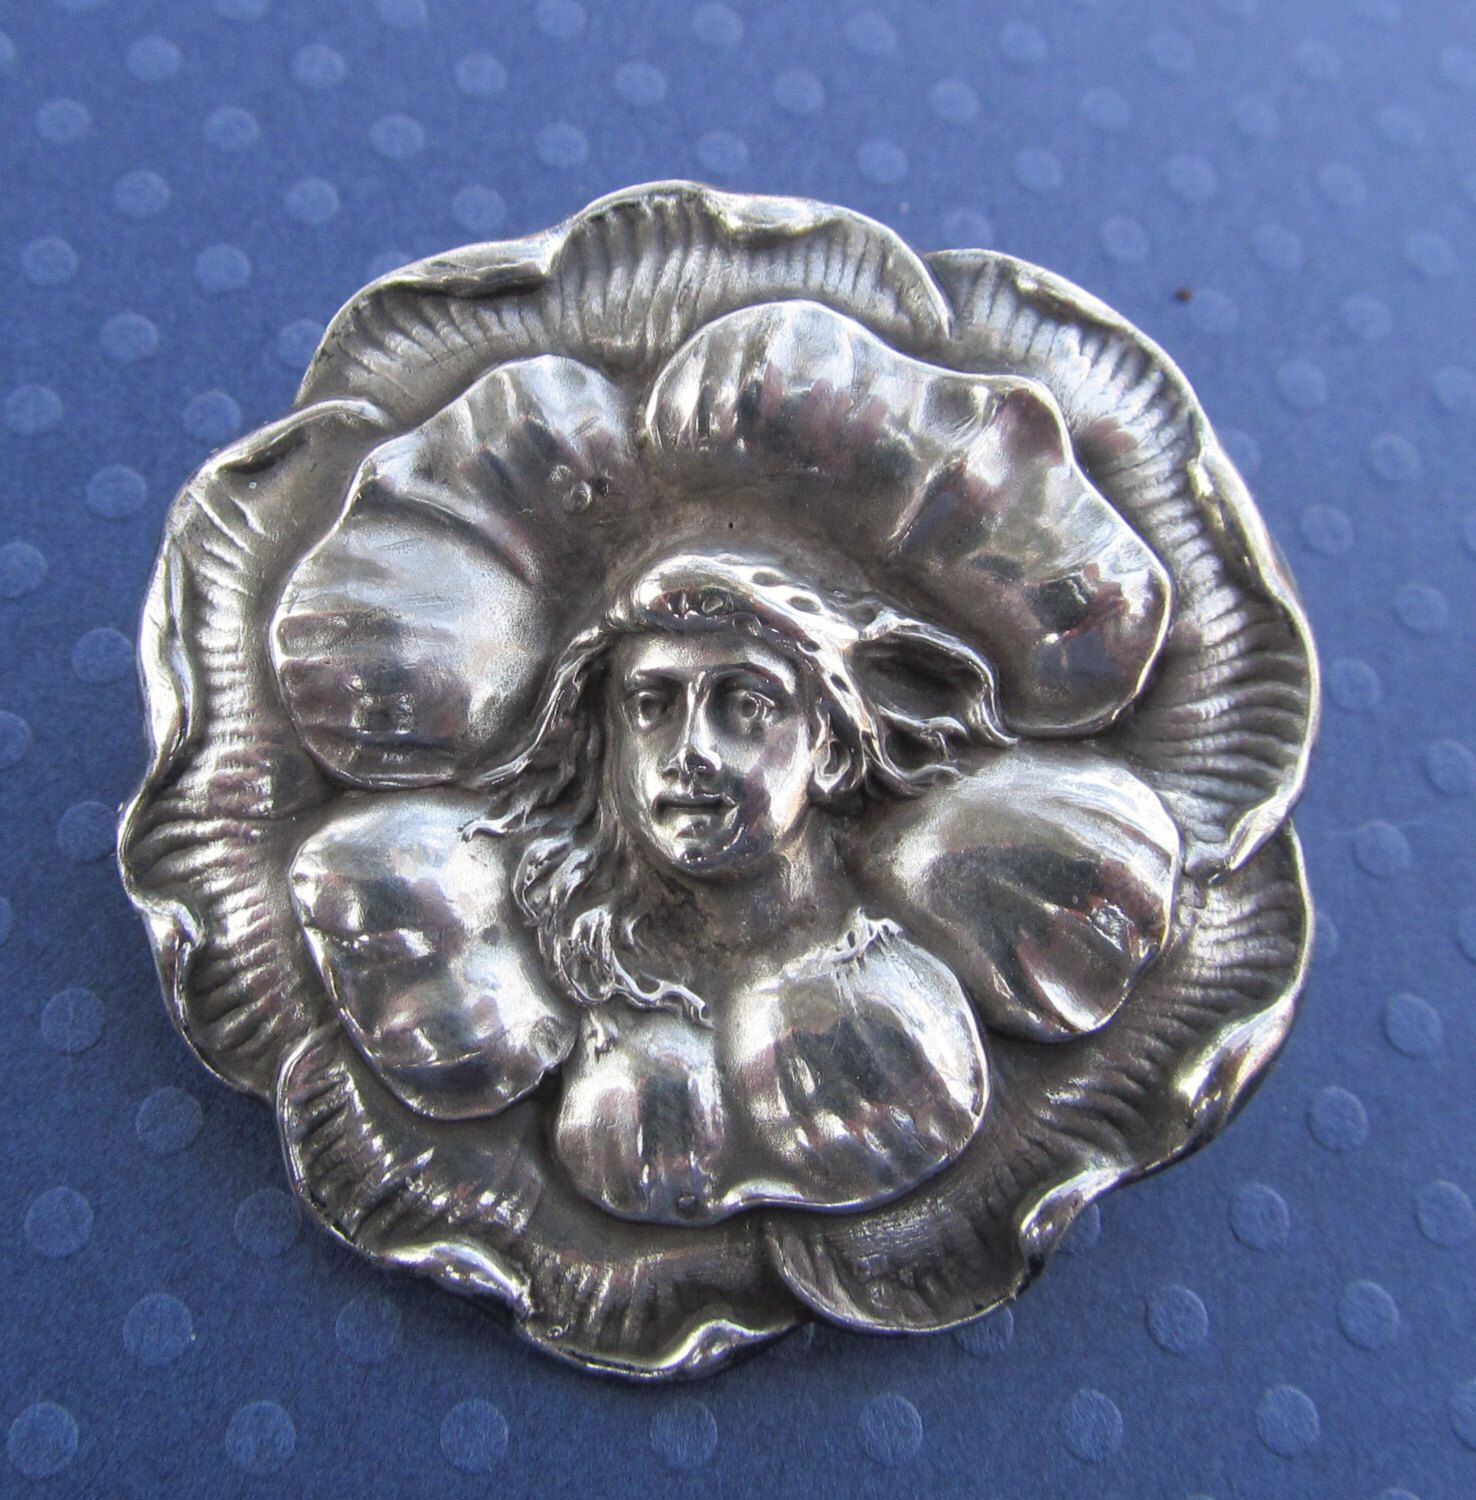 Art Nouveau Brooch Lady In A Flower Antique Sterling Silver Pin Circa 1910 by SarahAndJohns on Etsy https://www.etsy.com/listing/128558626/art-nouveau-brooch-lady-in-a-flower